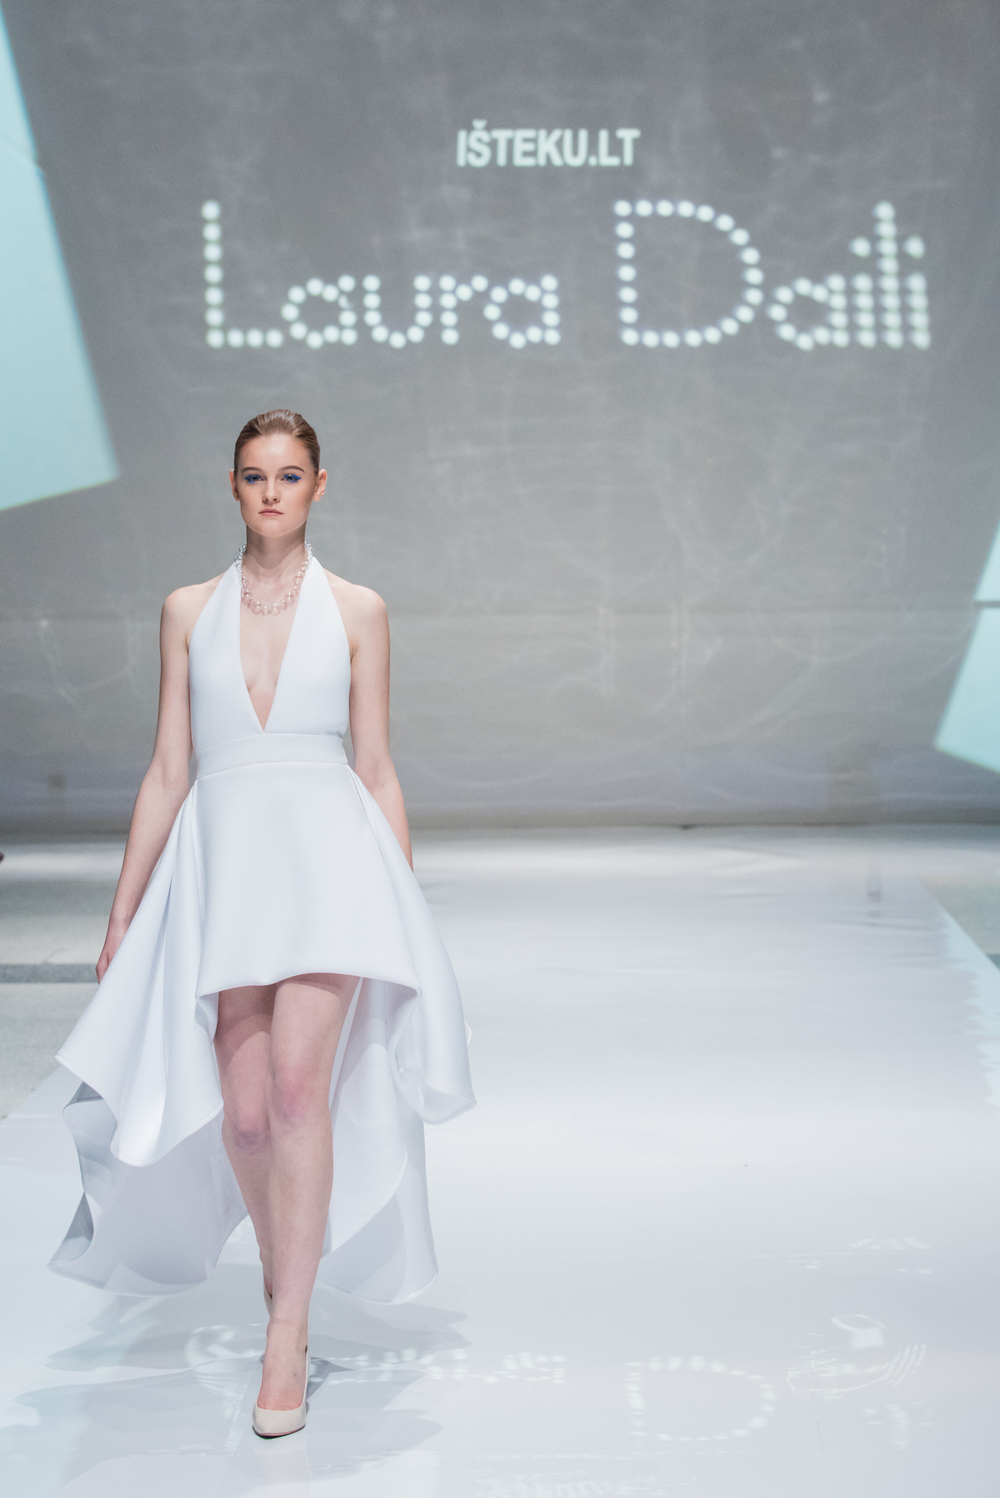 Laura Daili Bridal Collection 2017 Isteku lt (29)